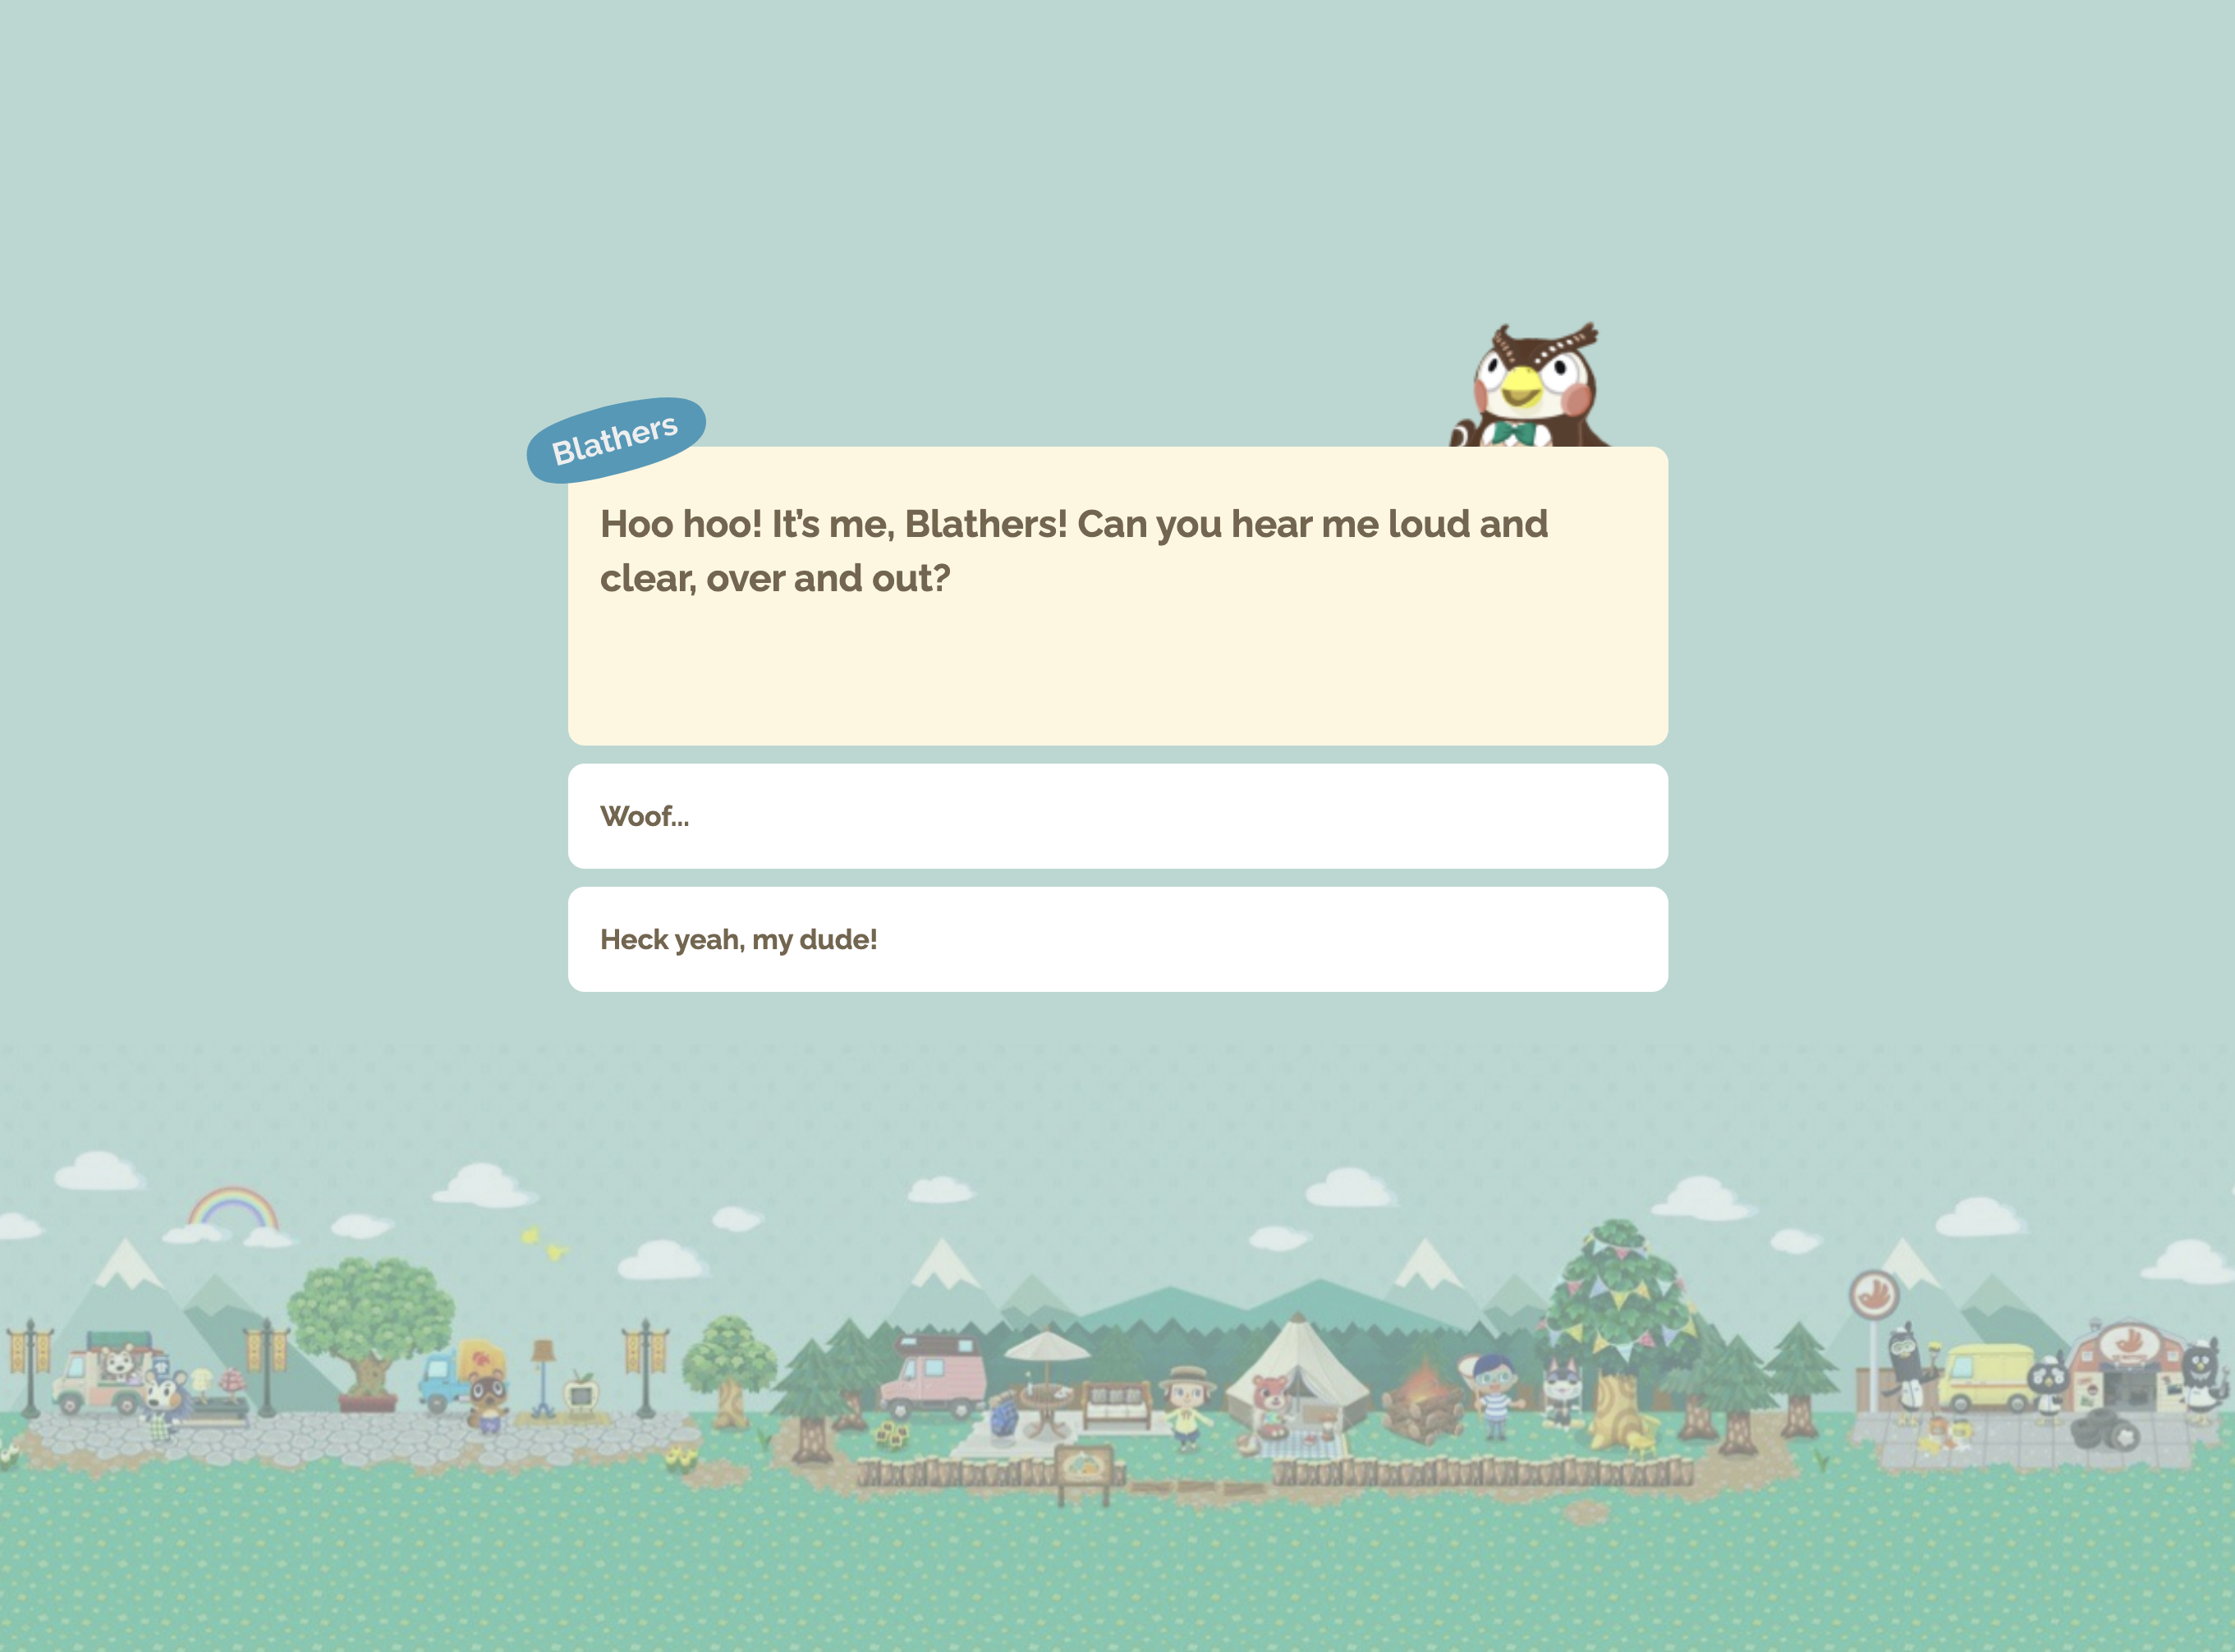 A text adventure game inspired by Animal Crossing